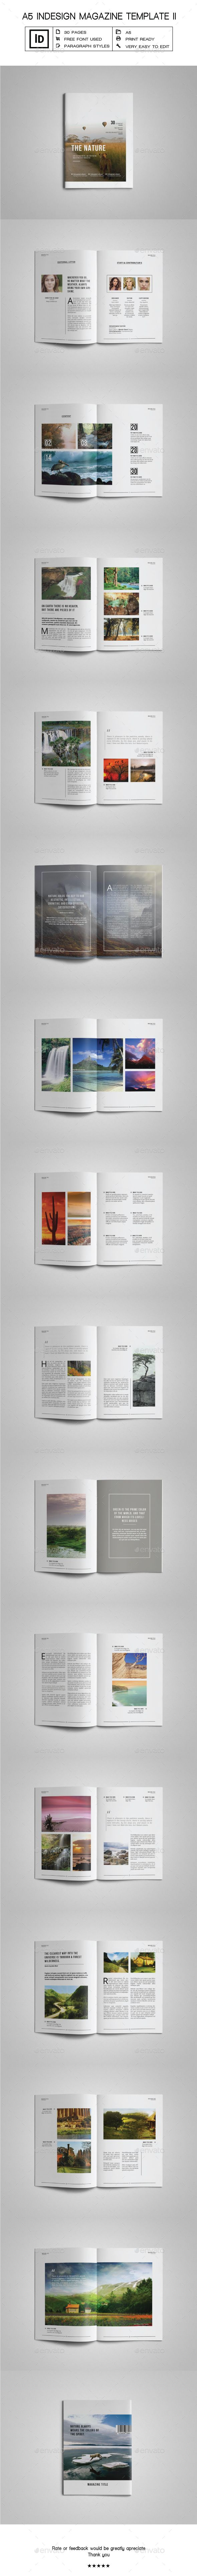 A5 Indesign Magazine Template II | Indesign magazine templates ...